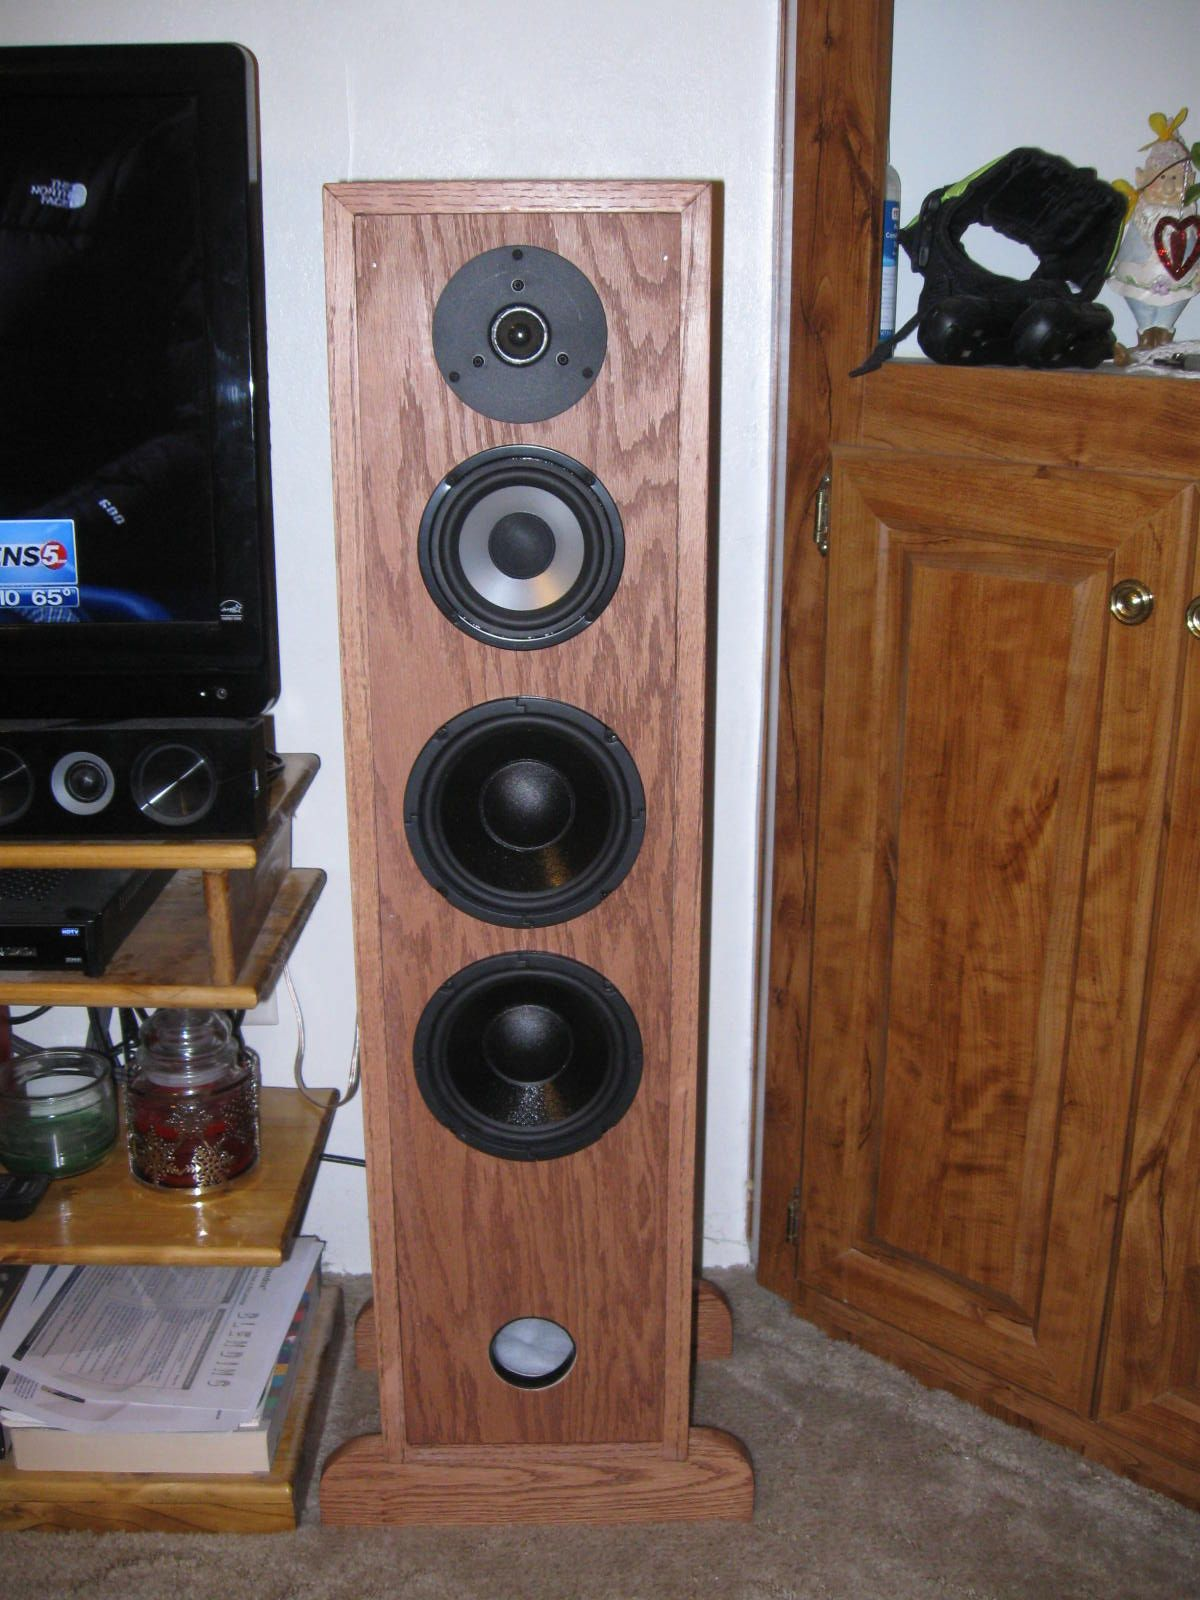 I am also a little into speaker building